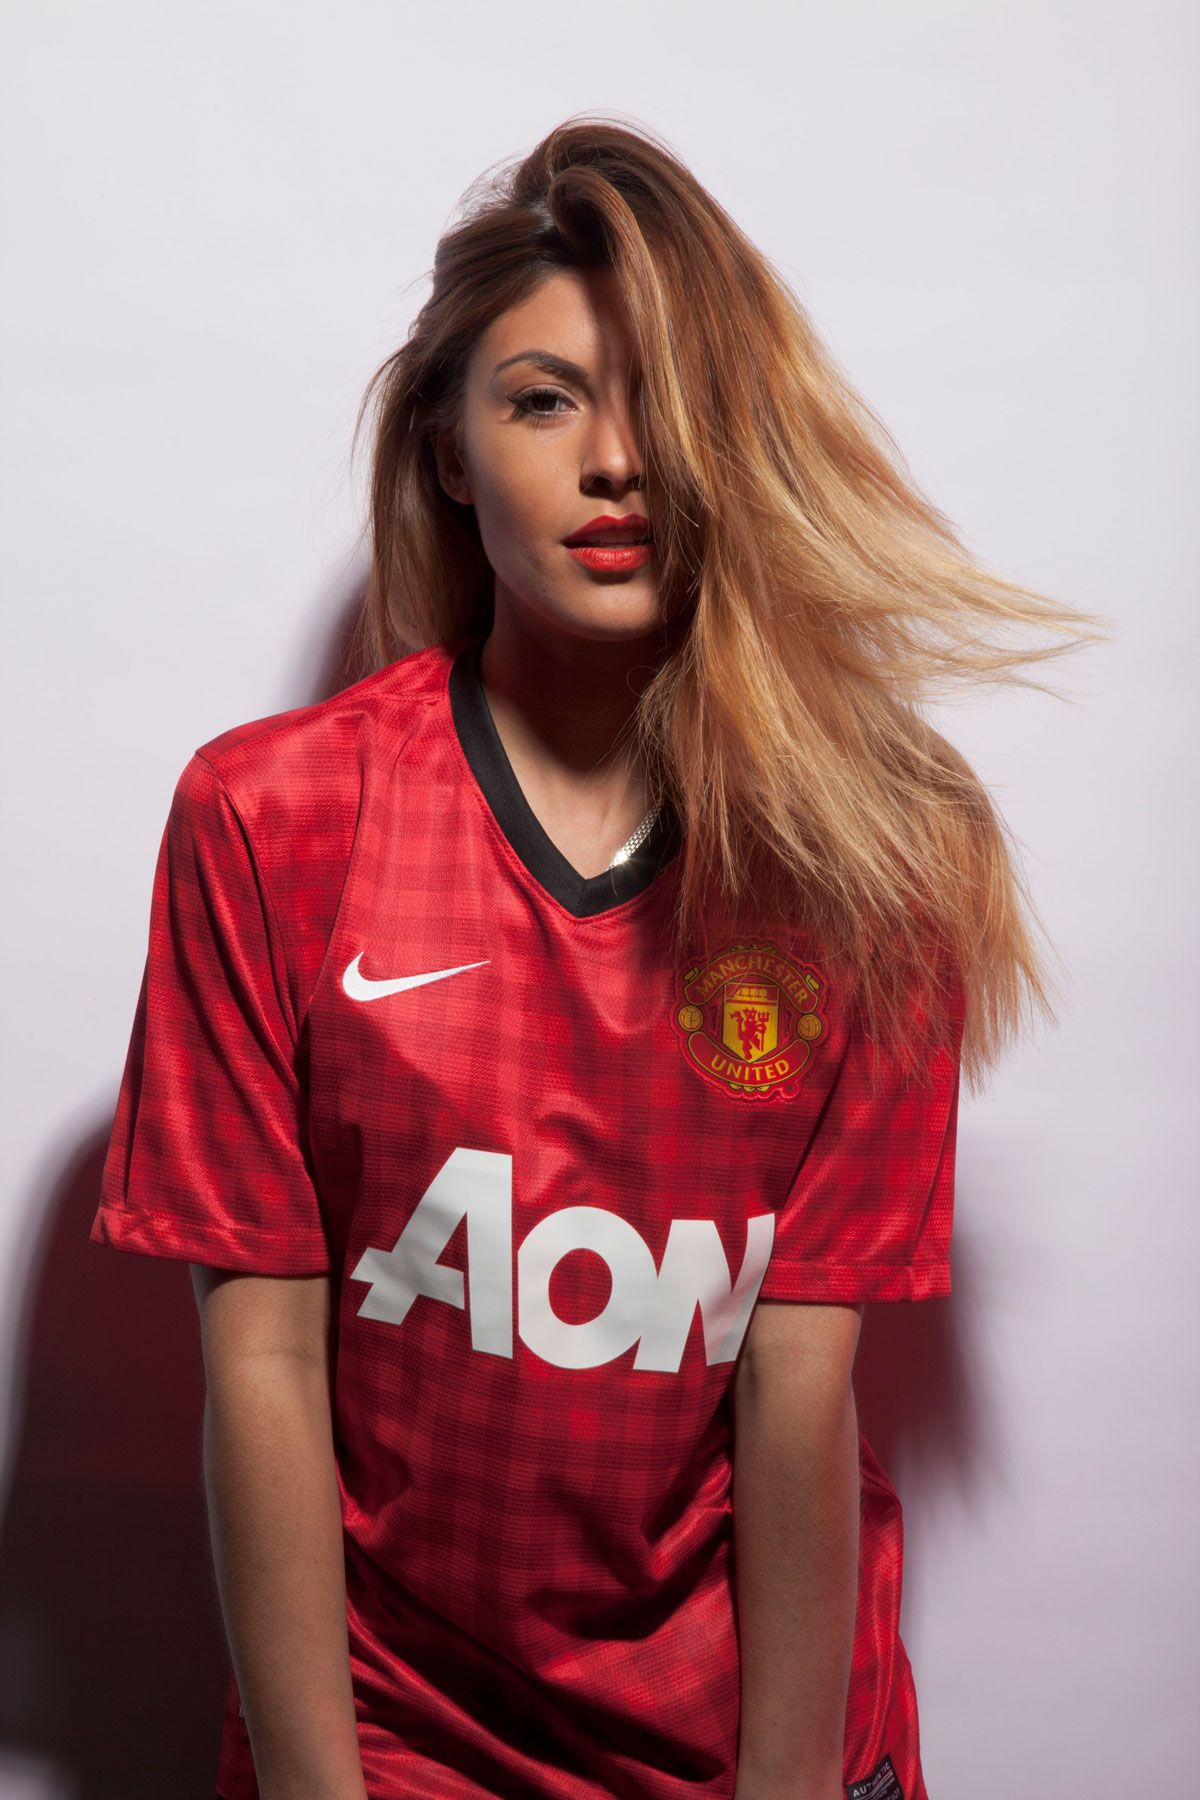 Image result for girl in manchester united jersey